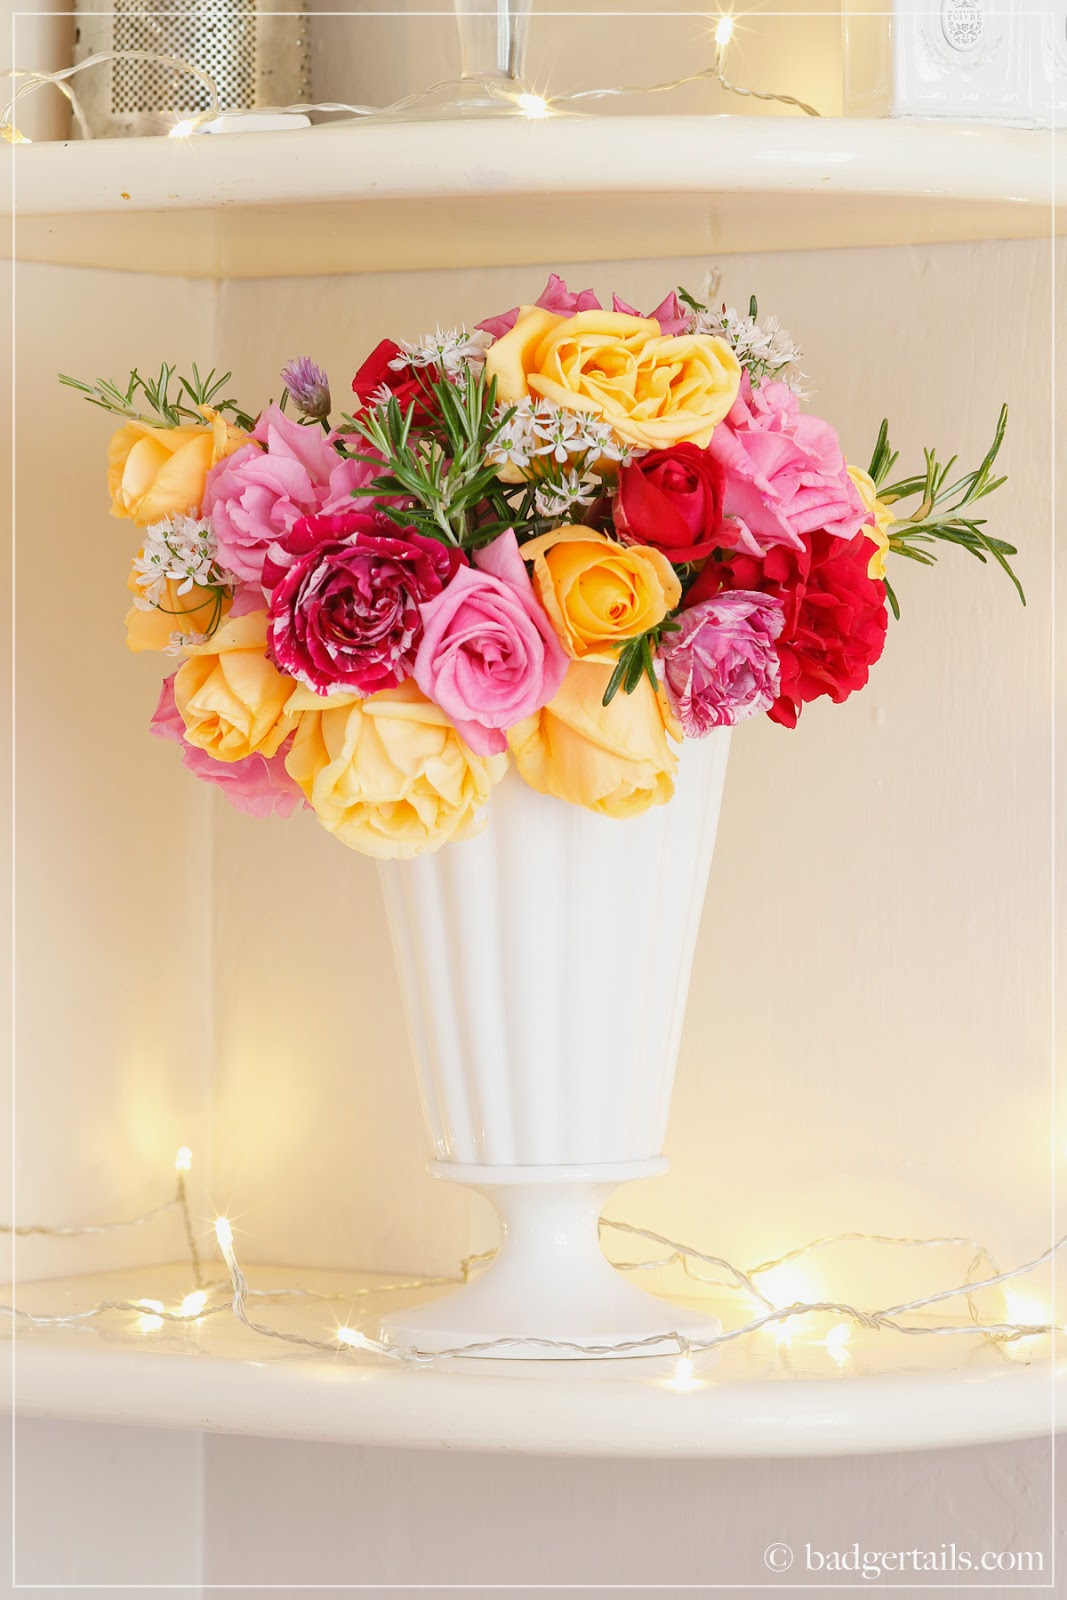 Badgertails ~ Homemaker: Pink and Orange Roses in White Urn